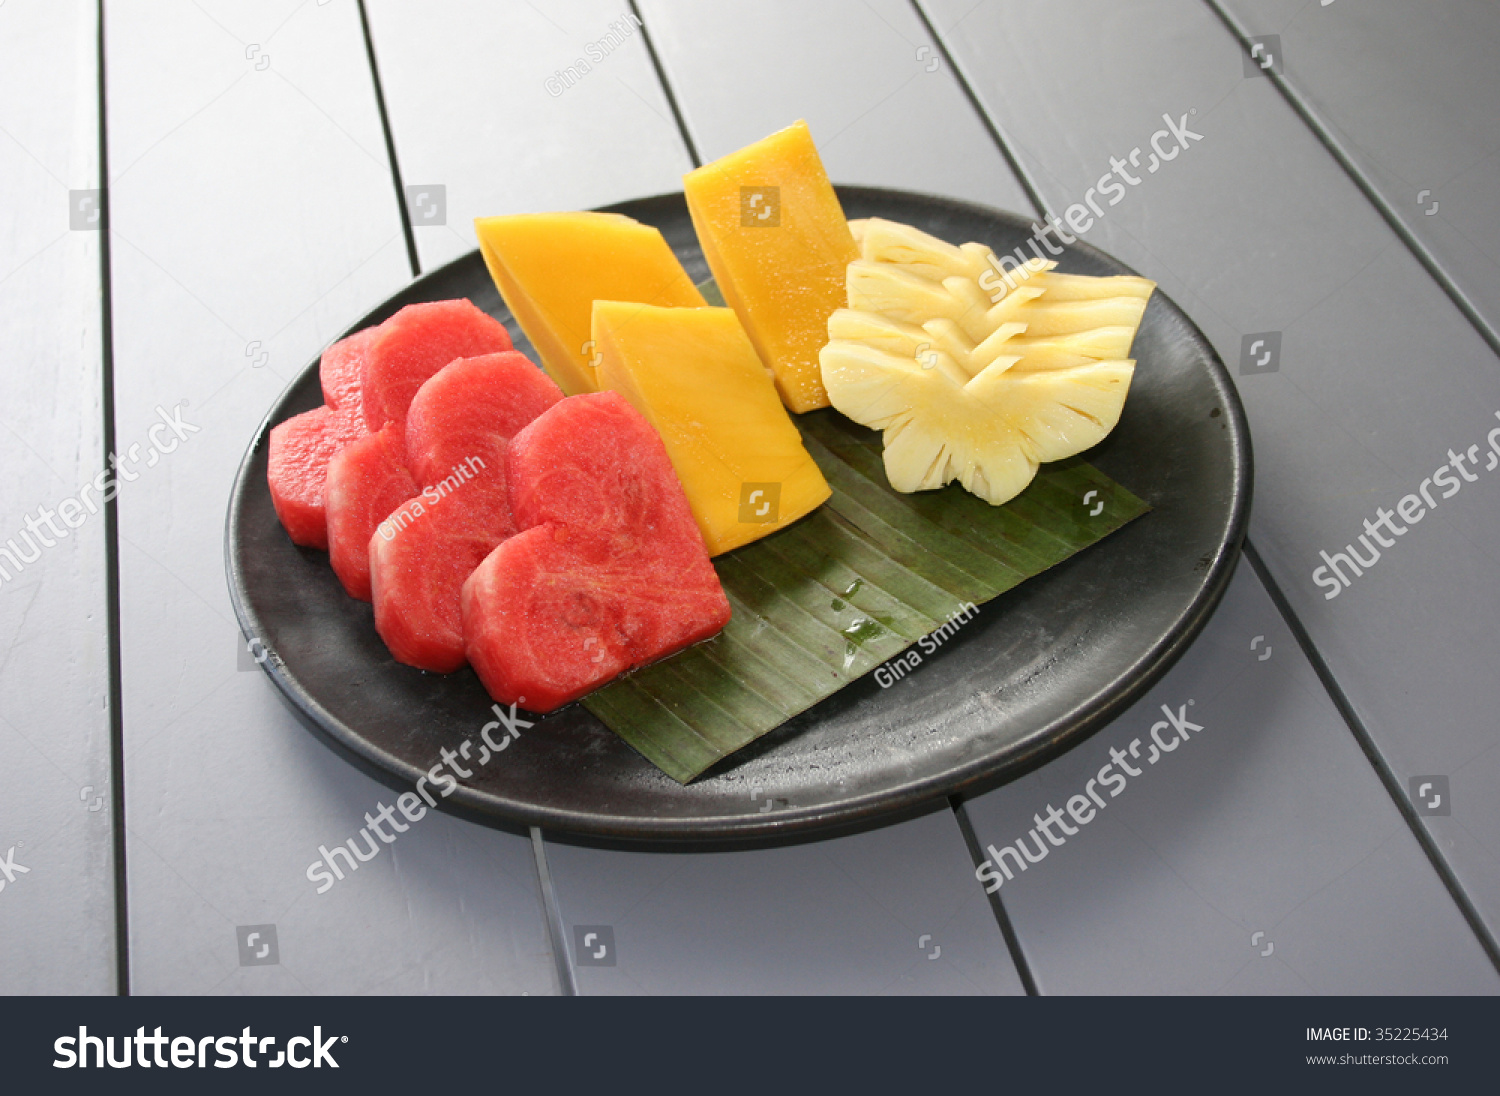 how to cut pineapple into shapes